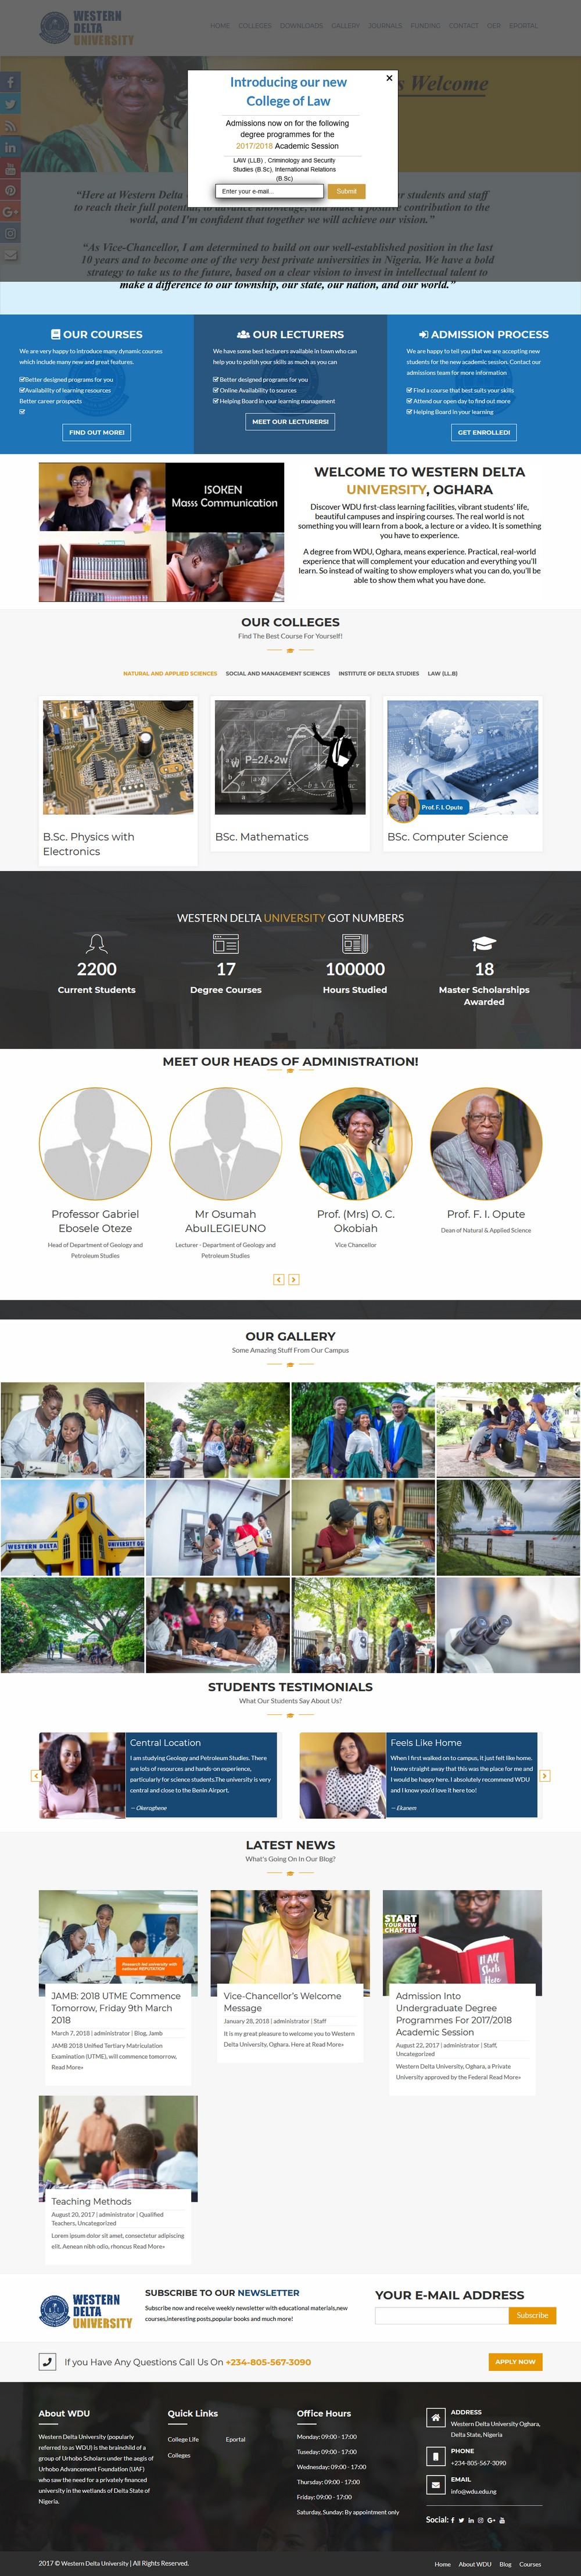 Western Delta University - Successfully Delivered Projects On-Time and On-Budget. Improved Website Conversation Rate By 80% Against Existing Control.